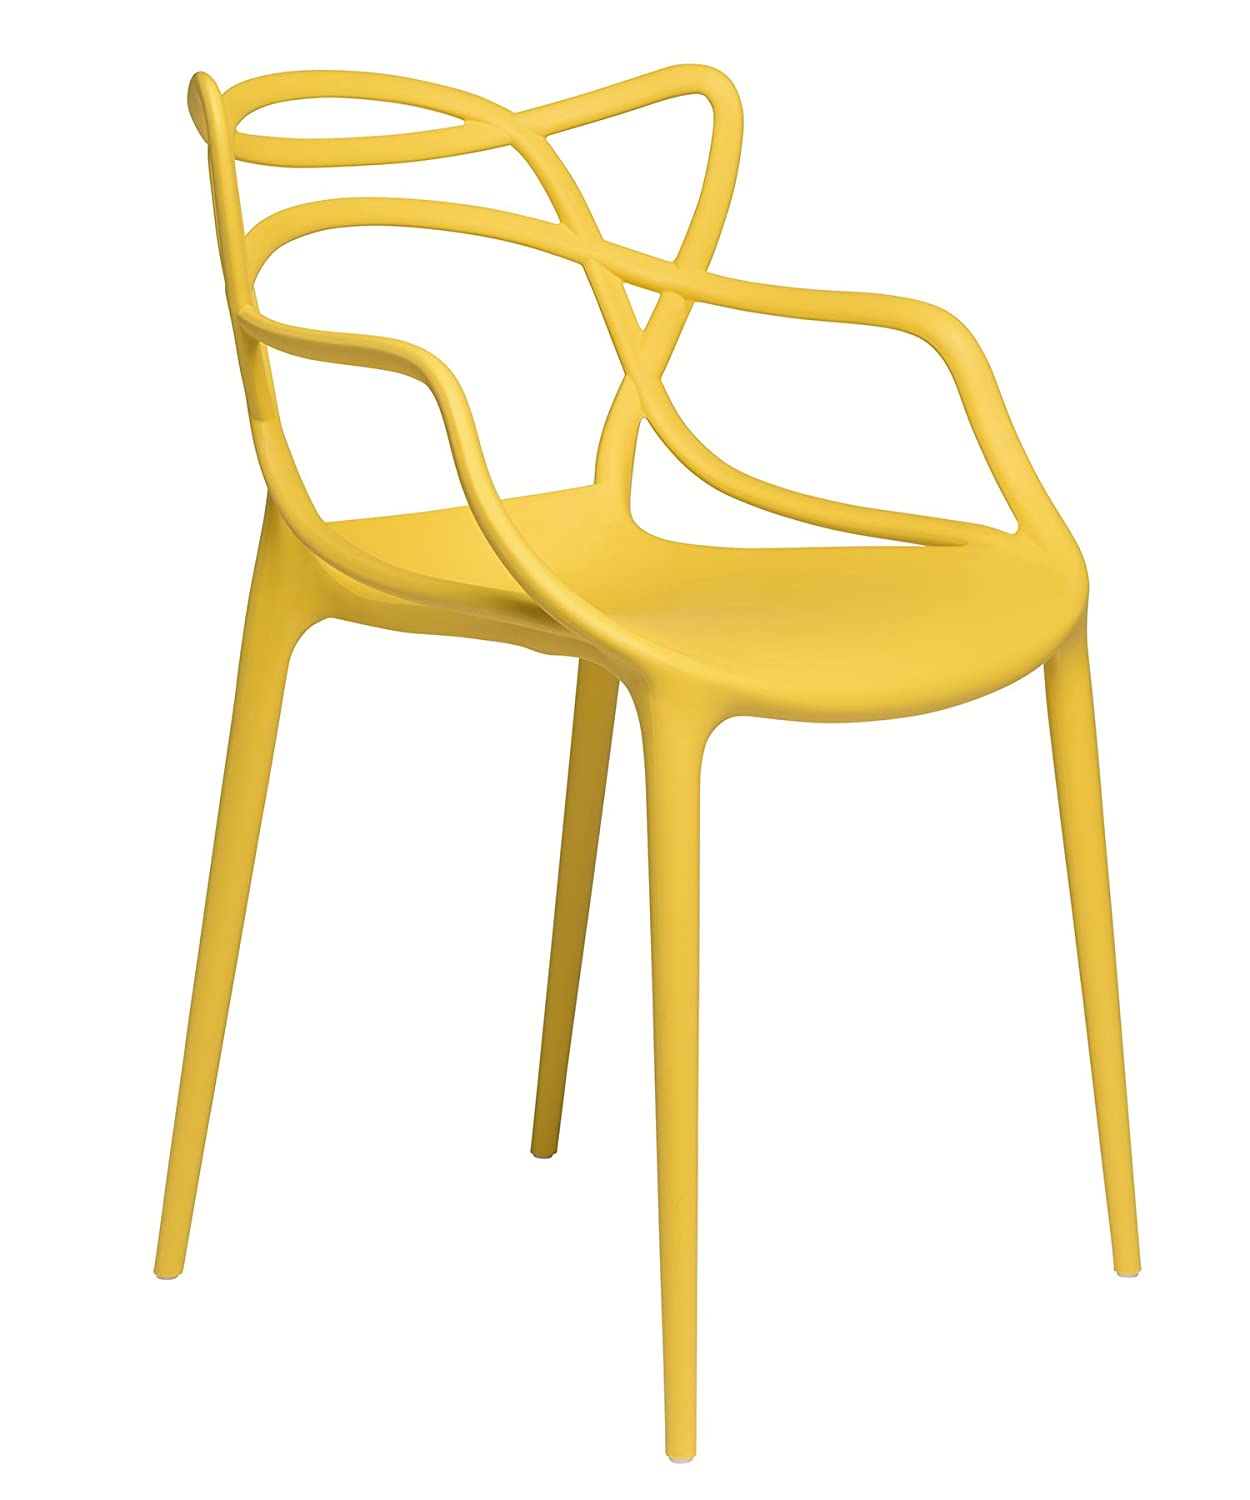 Set of 2 - Masters Entangled Chair Replica - Modern Designer Armchairs for Dining Rooms, Offices and Kitchens (Yellow)